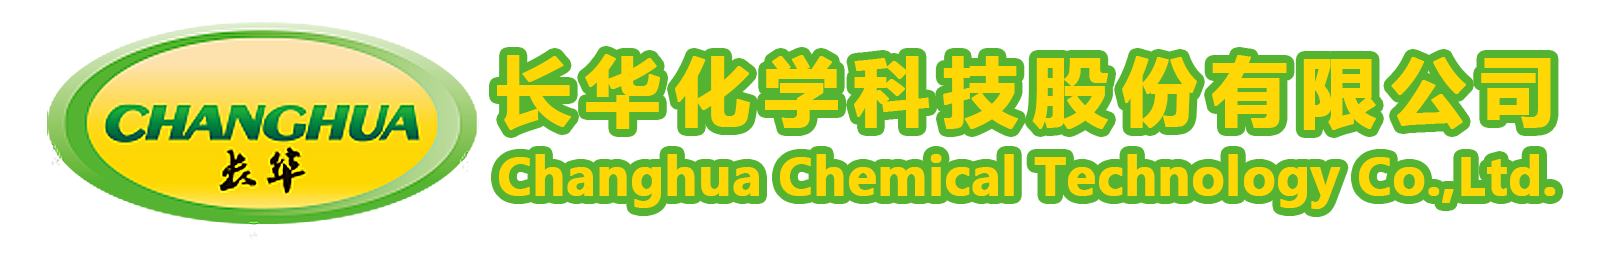 Changhua Chemical Technology Co., Ltd.